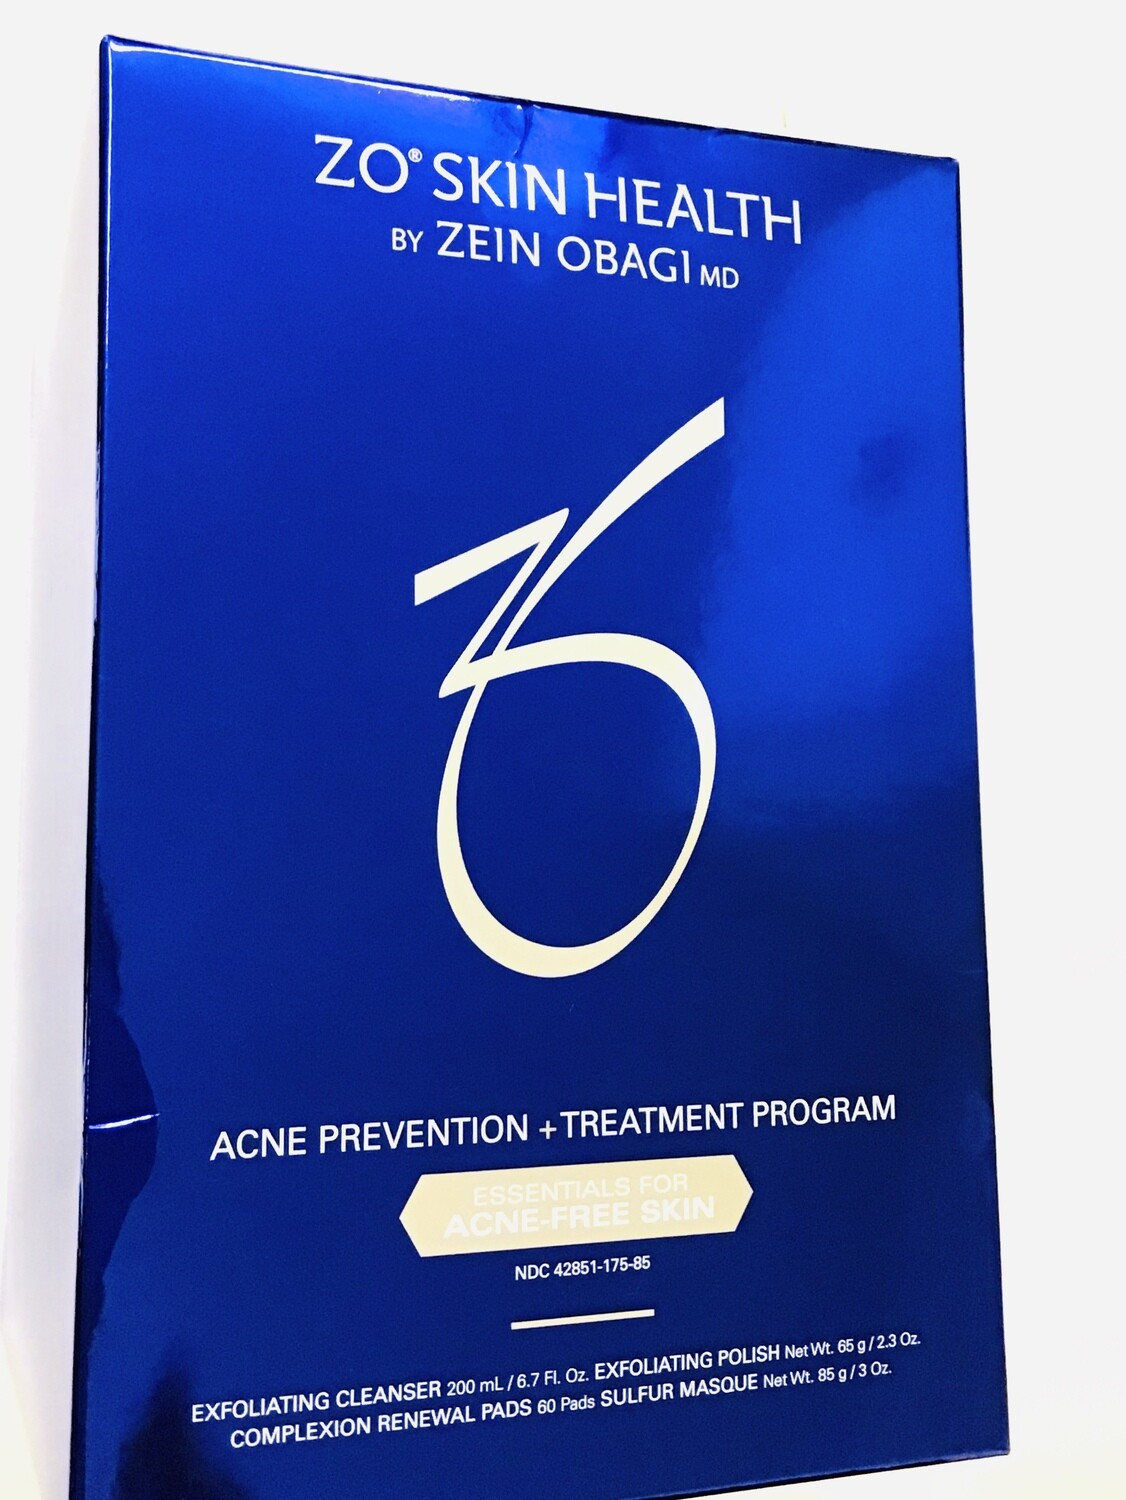 Acne Prevention + Treatment Program Kit